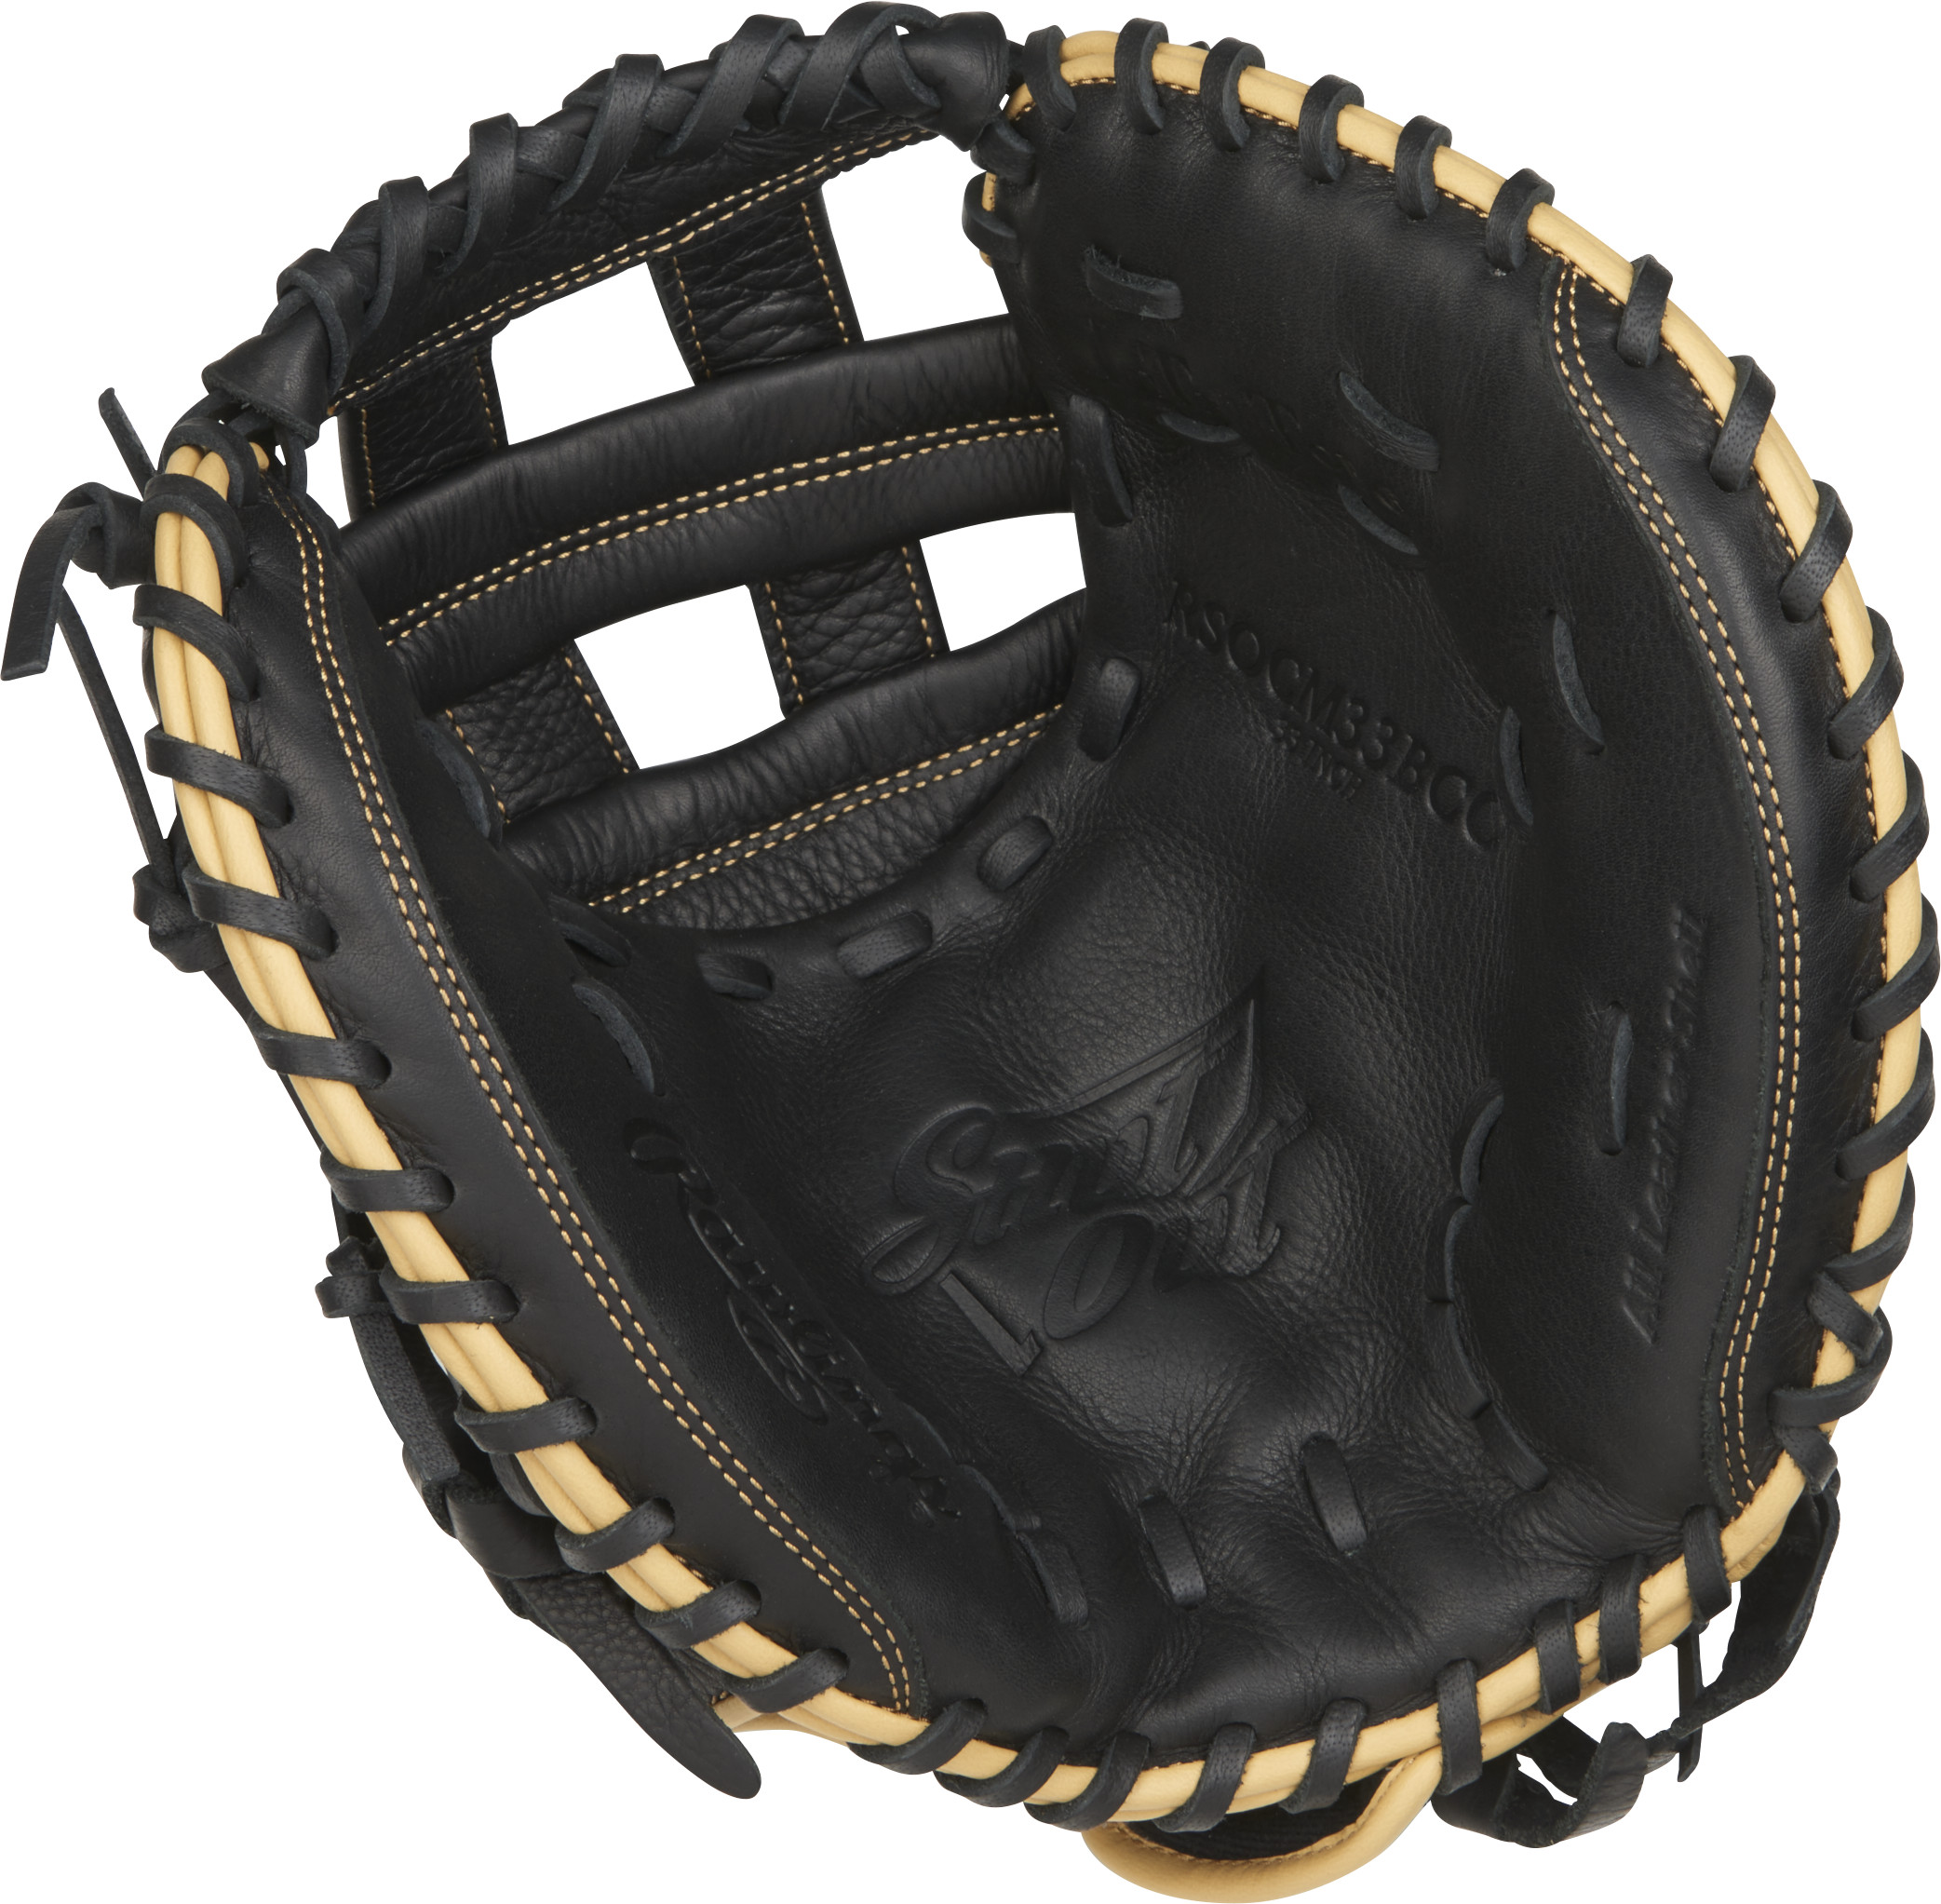 http://www.bestbatdeals.com/images/gloves/rawlings/RSOCM33BCC-1.jpg